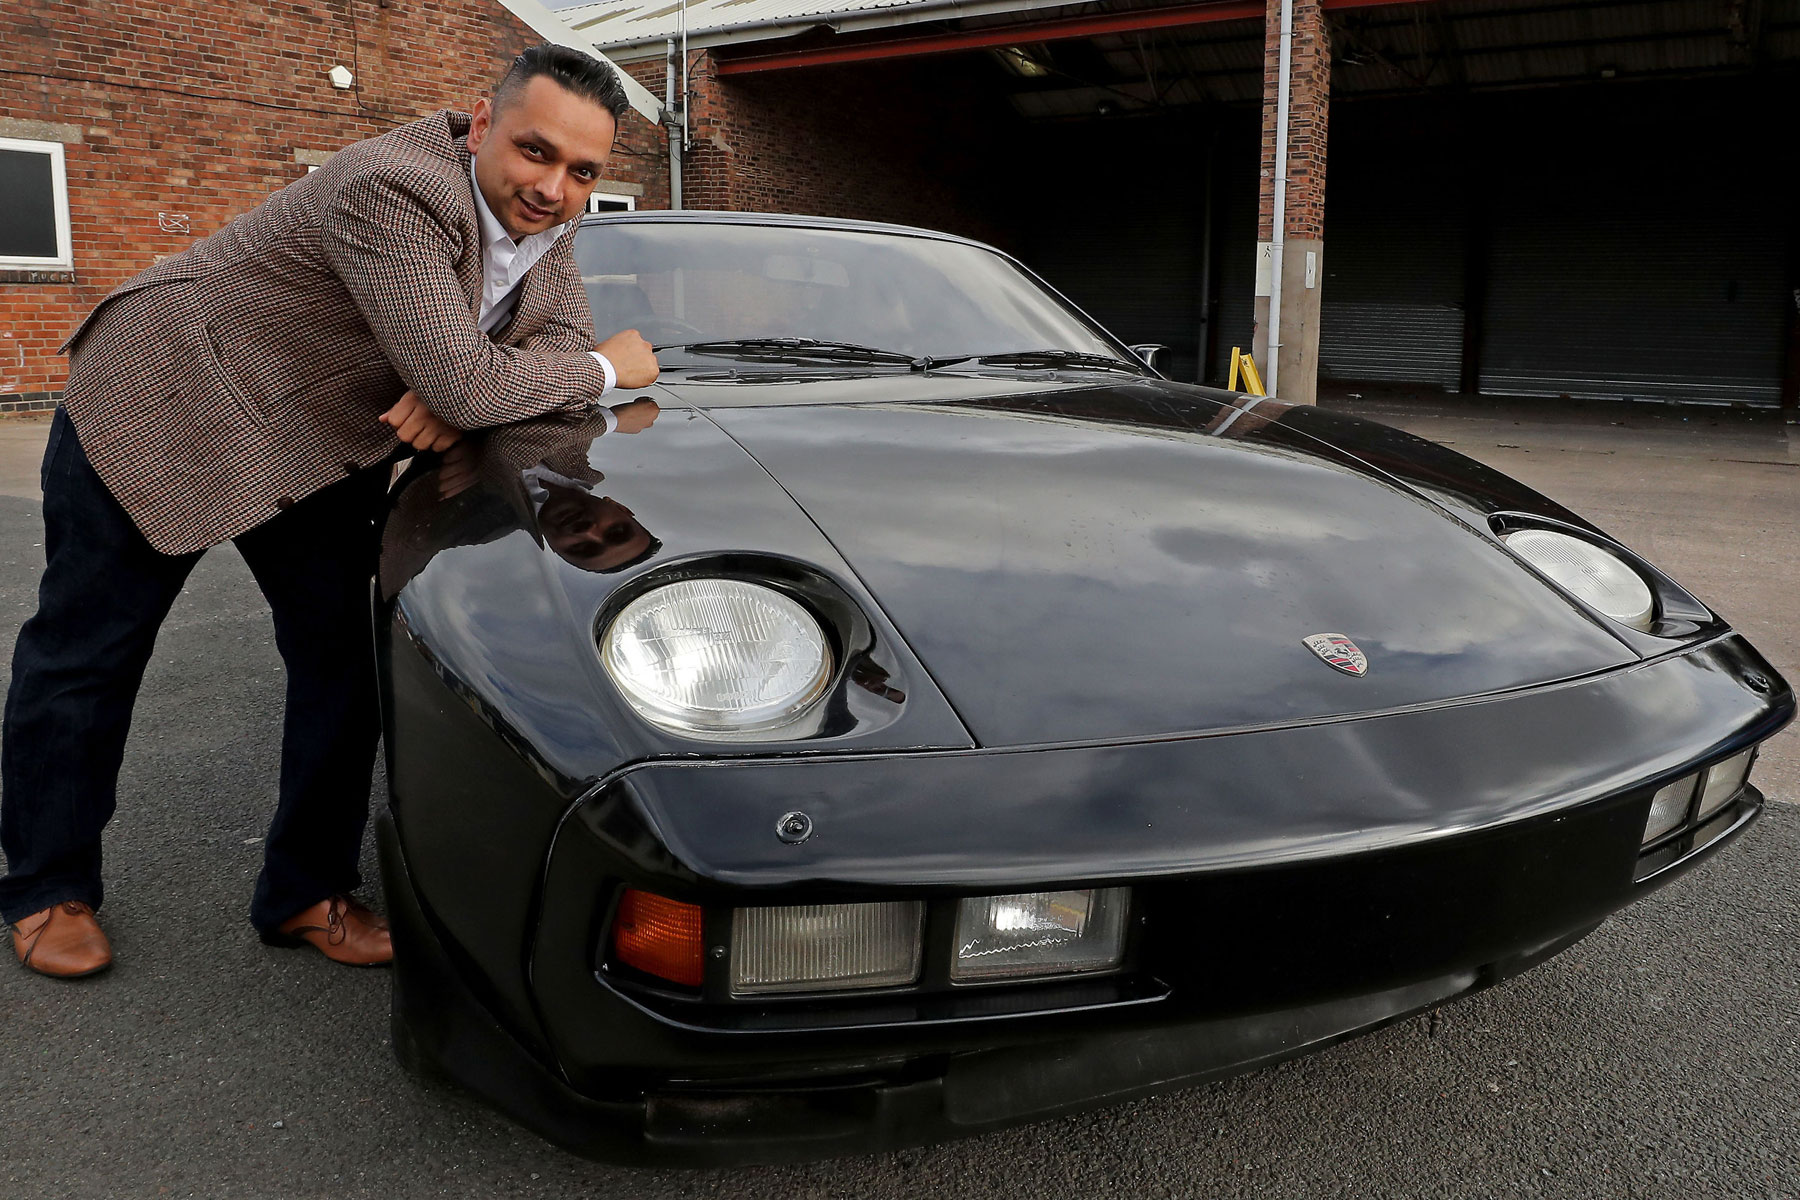 George Harrison's Porsche 928 rescued from the scrapheap